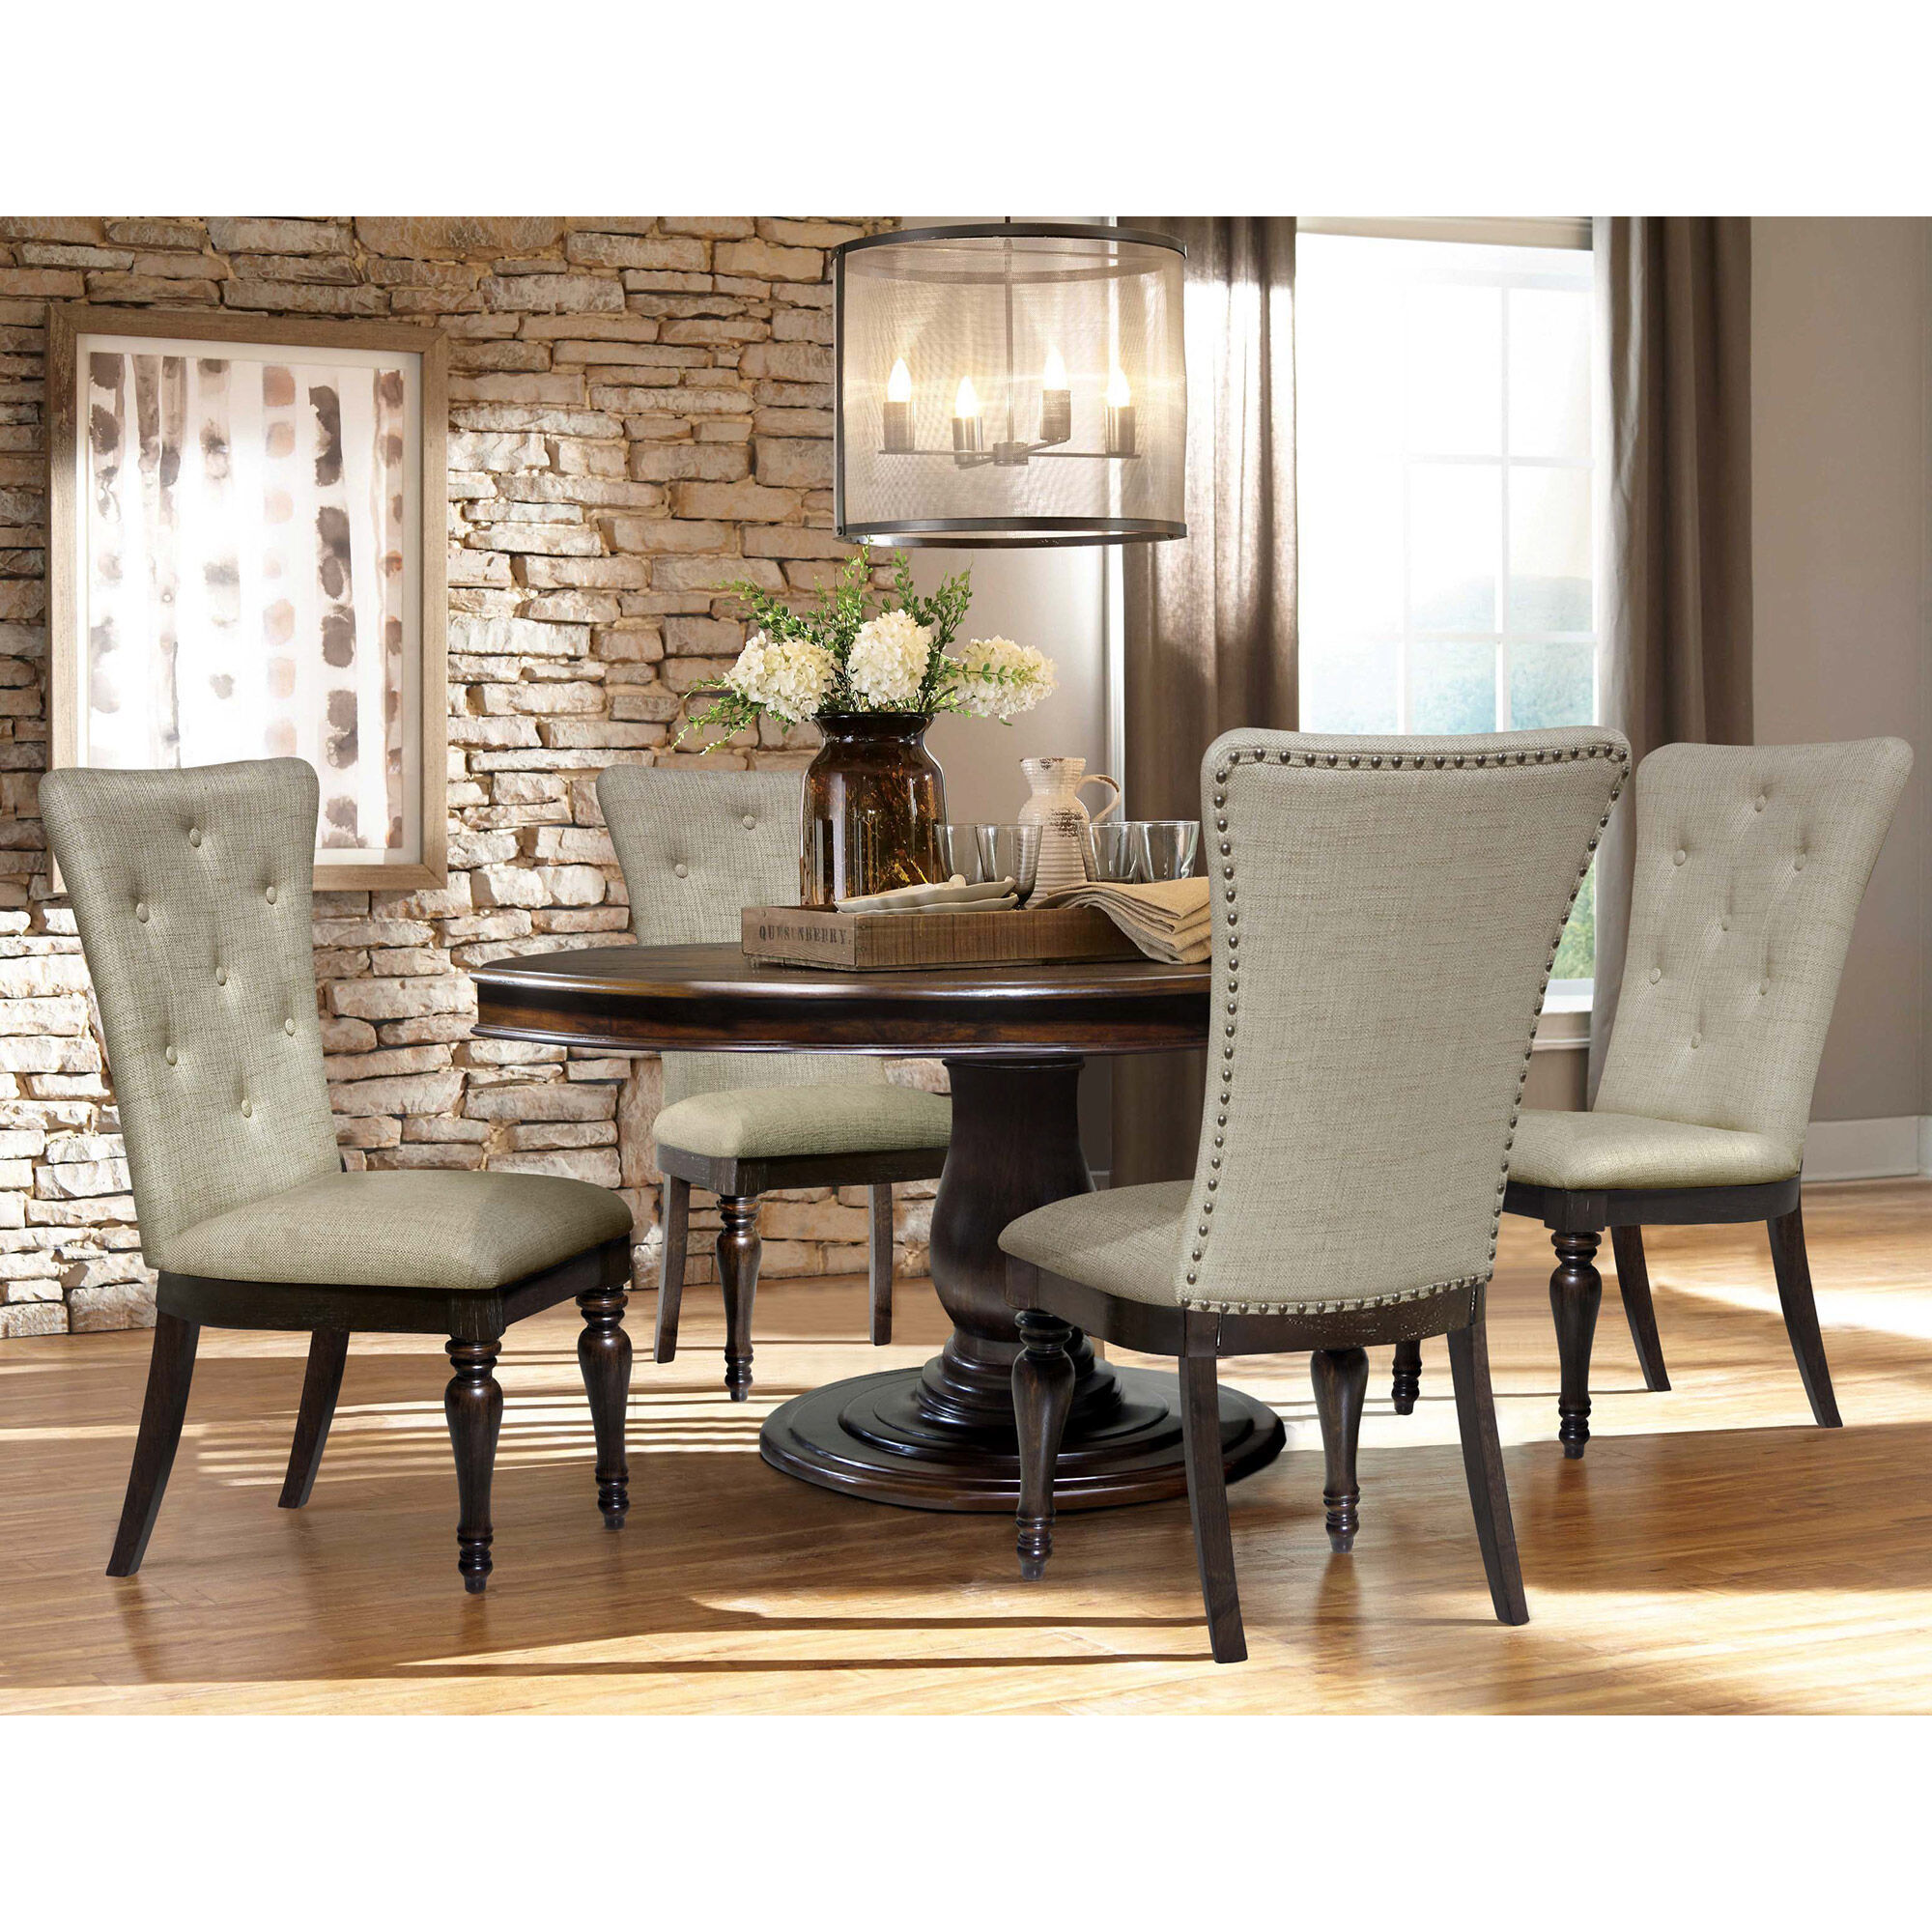 Pics of dining room furniture Roomstogo 5piece Belmont Dining Room Collection Rent To Own Dining Room Tables Sets Aarons